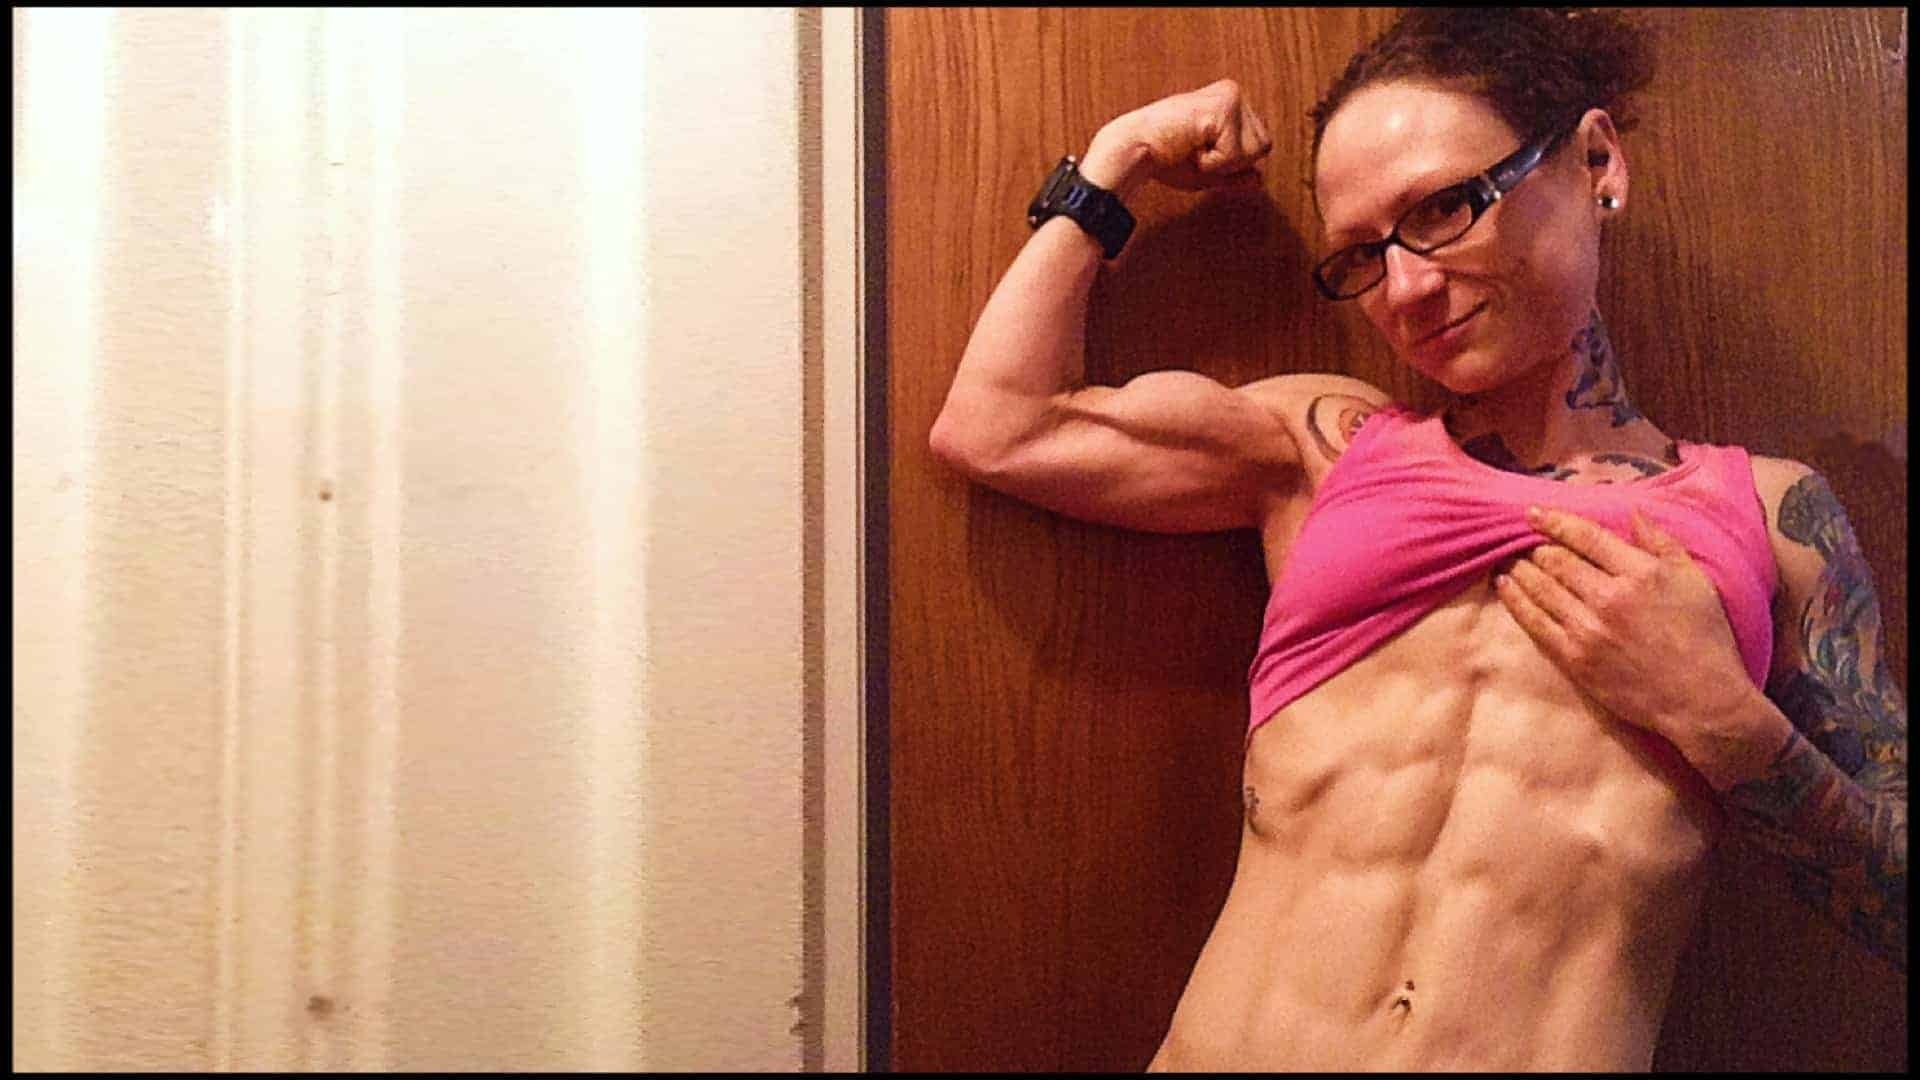 Emily Moran Barwick of Bite Size Vegan is shown from the waist up. Her right arm is curled, the muscles of her arm, clearly defined and taught. With her left arm, she is lifting up her shirt to reveal her wash-board abs and sculptured muscle definition.